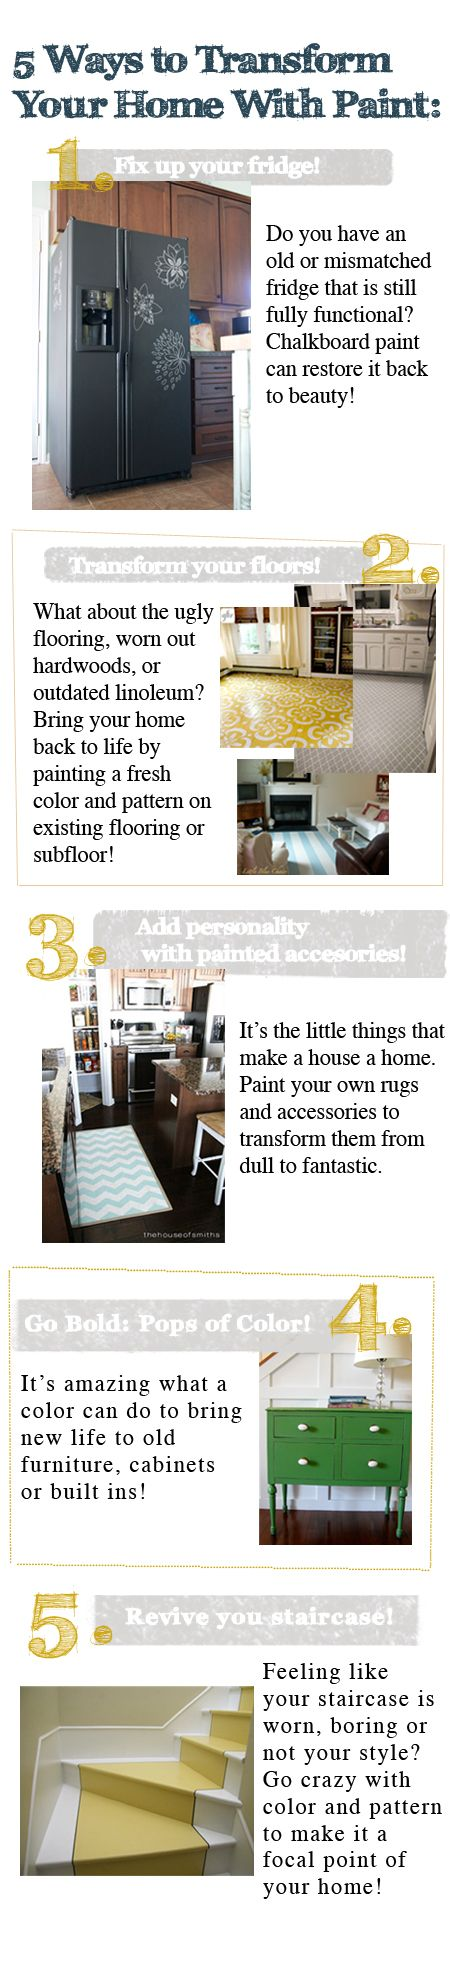 Paint: It\'s Not Just For Walls | Paint ideas, Rounding and Creative